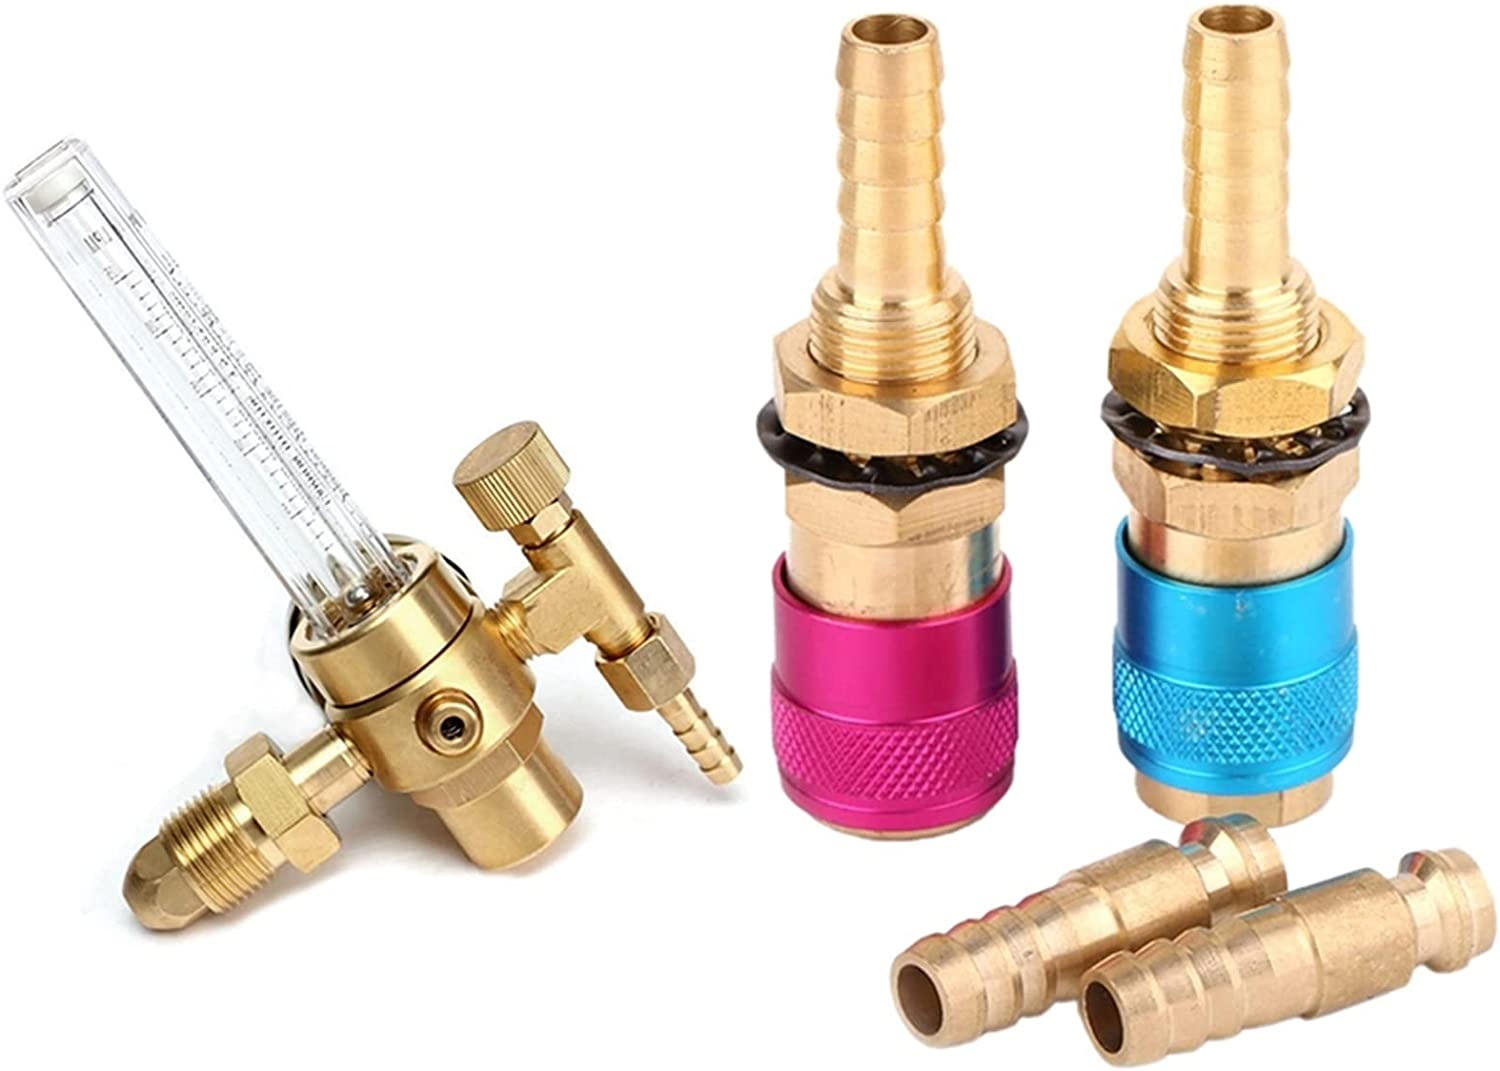 LXQS Welding Connector 1 Set Water Quick Conn Cooled Elegant Gas Adapter Sale special price